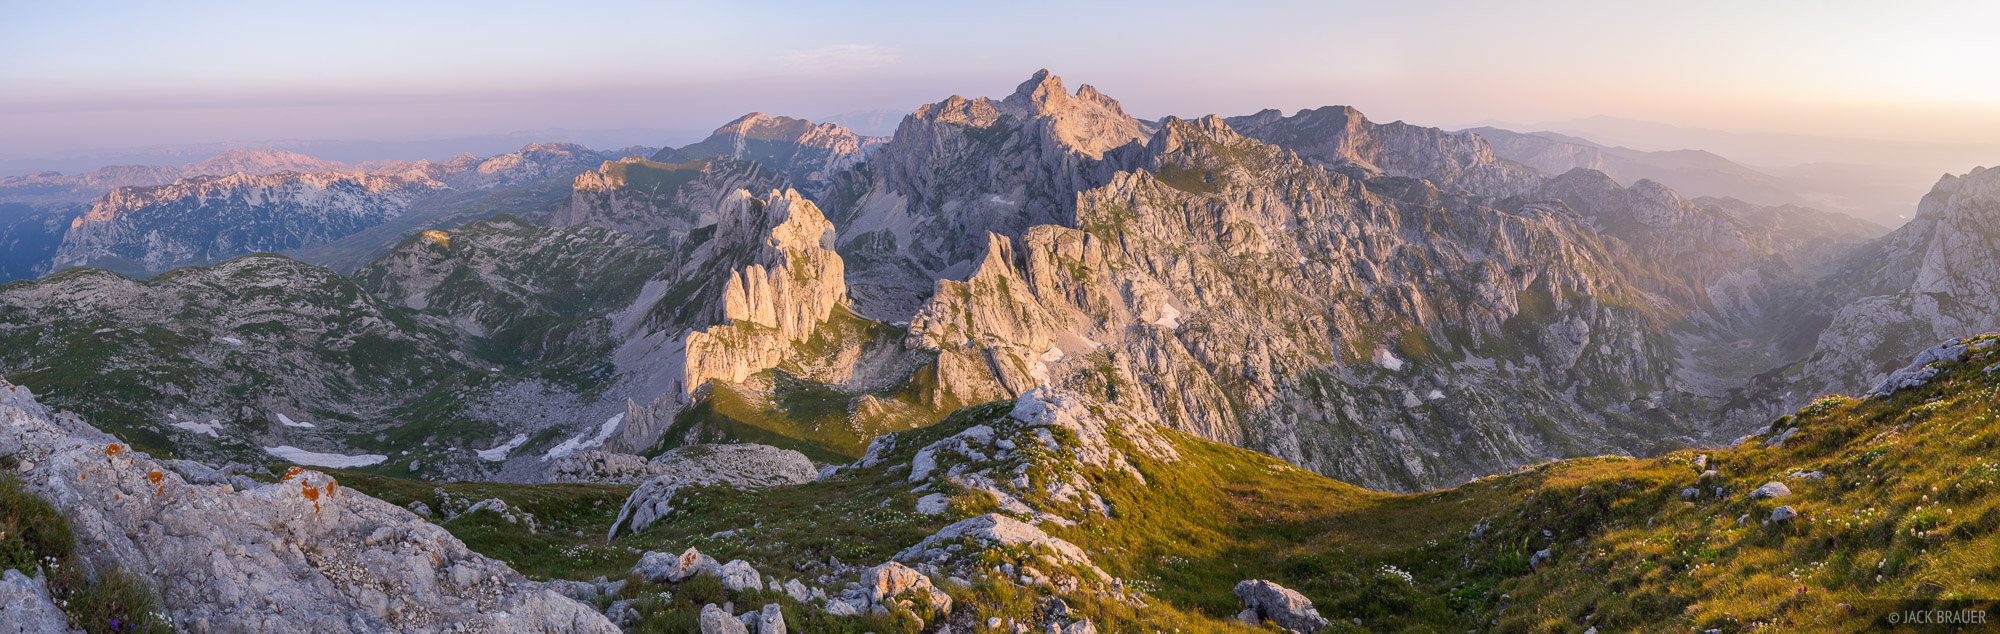 Bobotov Kuk,Dinaric Alps,Durmitor National Park,Montenegro, Bandijerna, panorama, photo